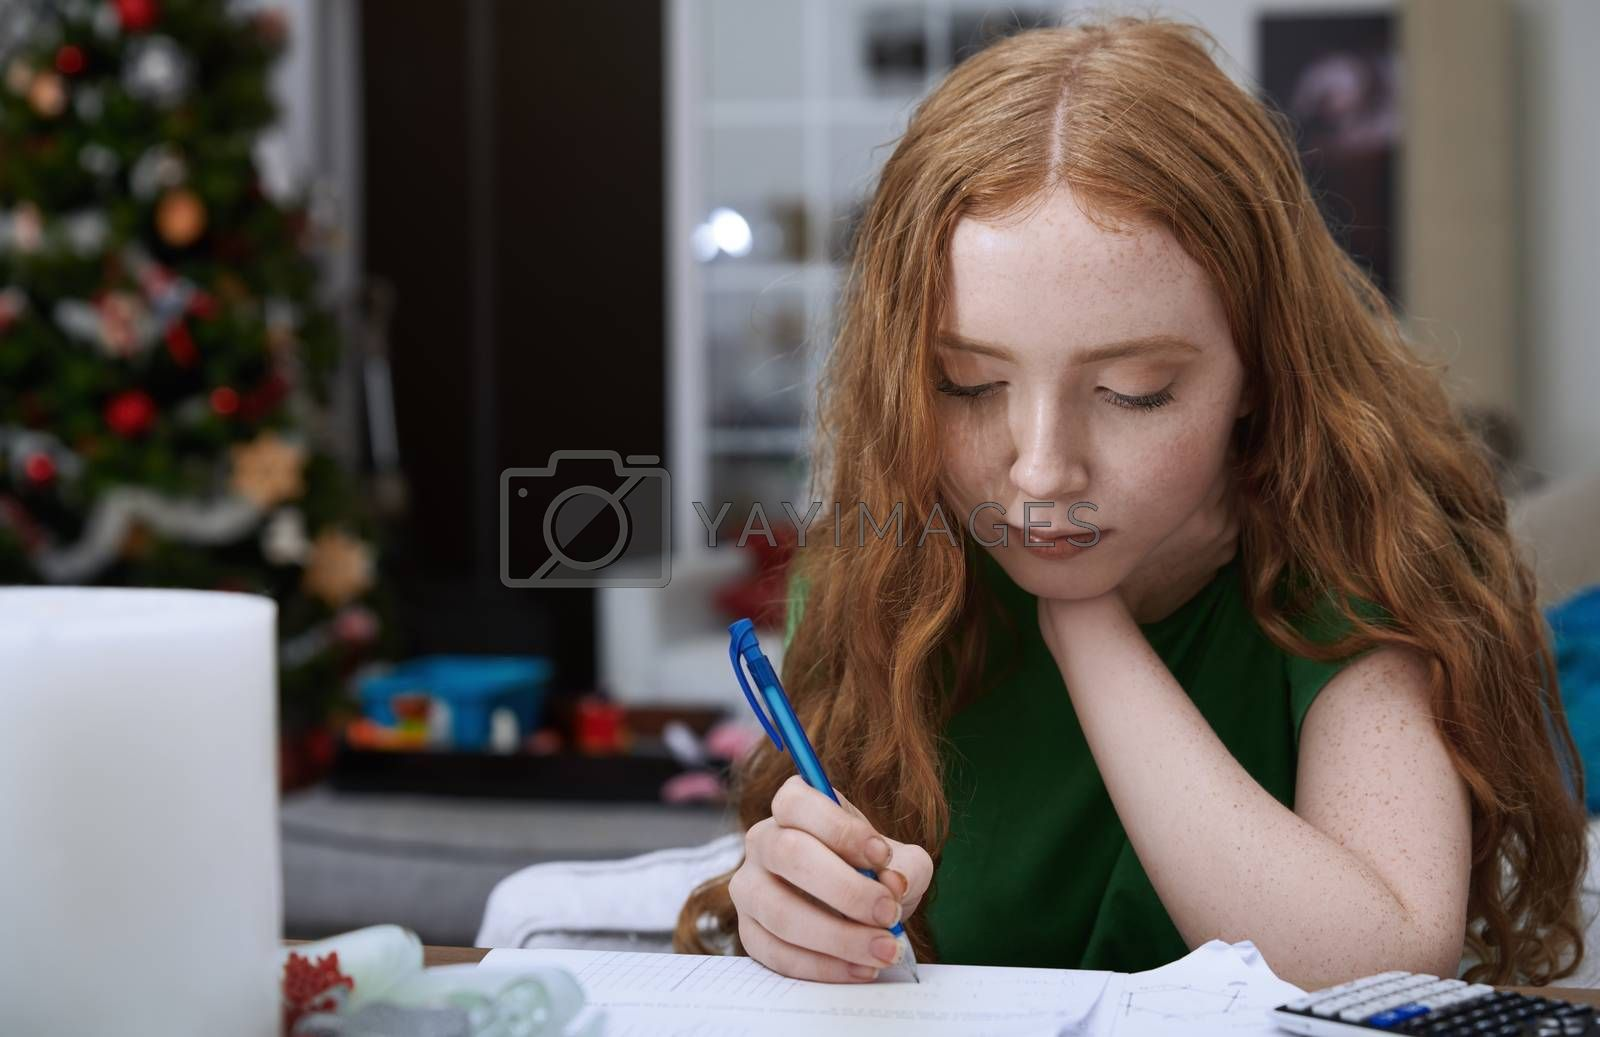 Teenage girl (13-15 years) doing homework